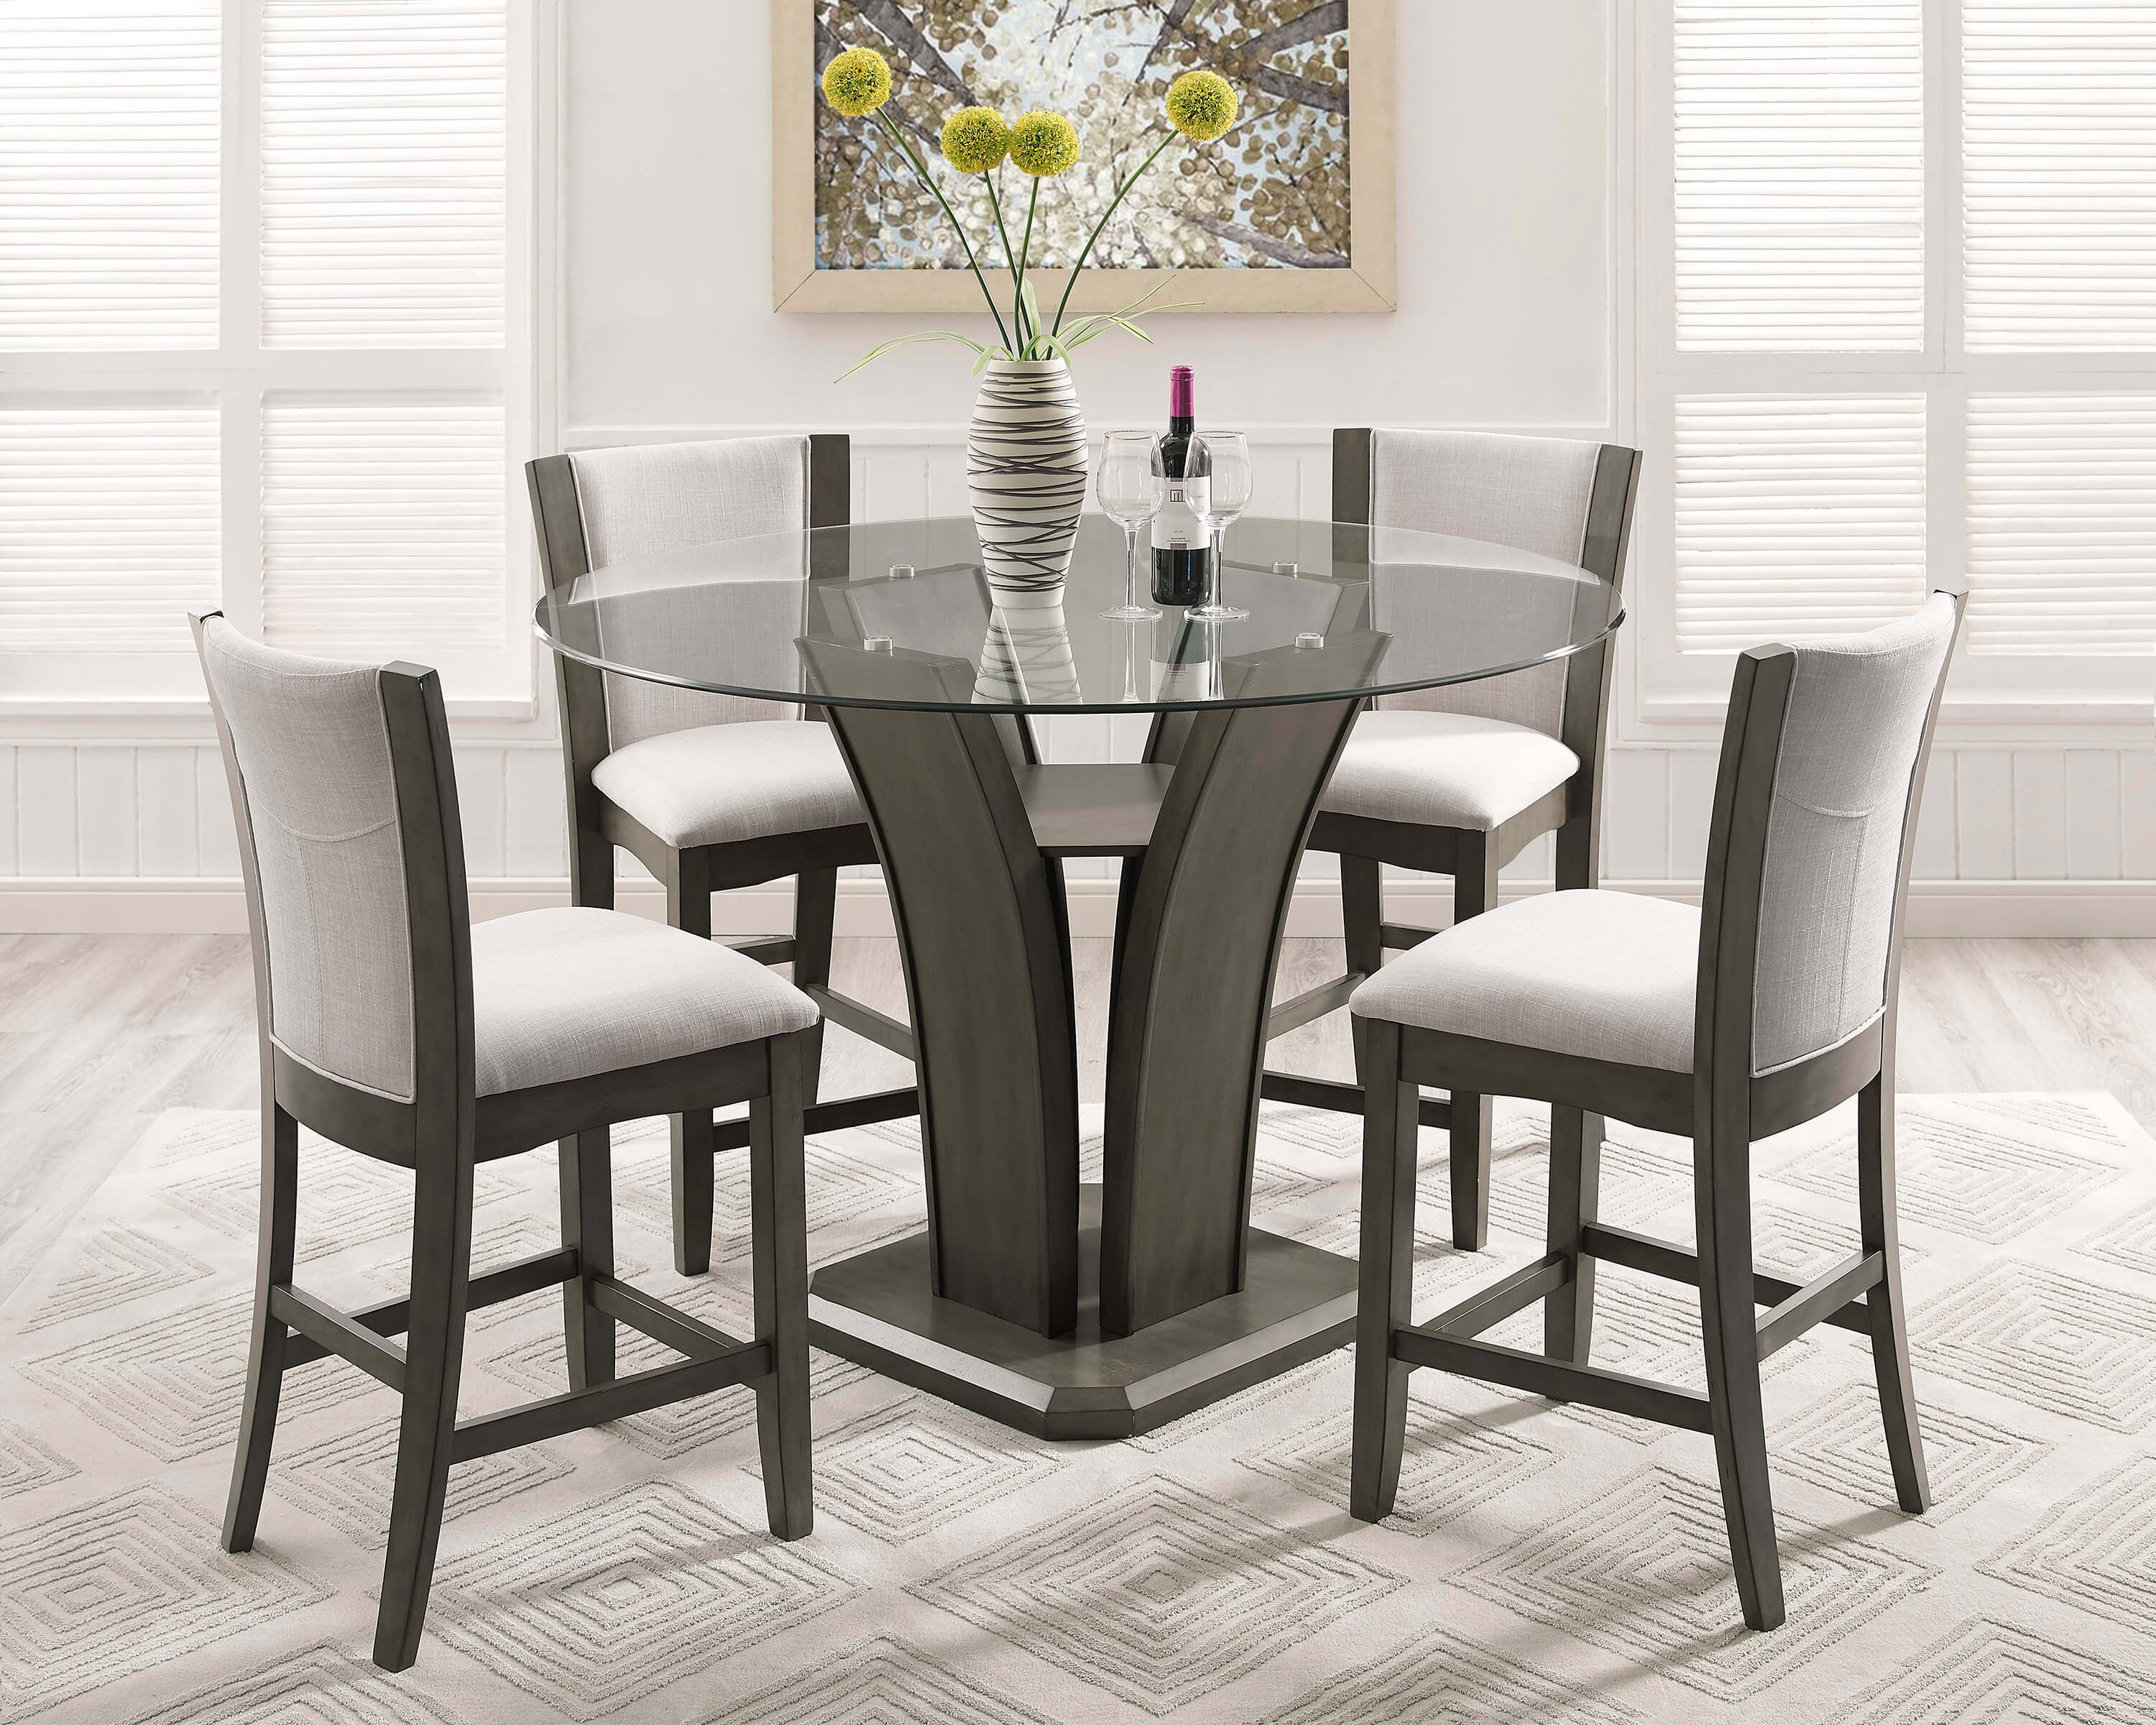 Crown Mark Camelia Grey Counter Height Glass Dining Set Counter Height Dining Sets High Dining Table Dining Table Counter height round table and chairs